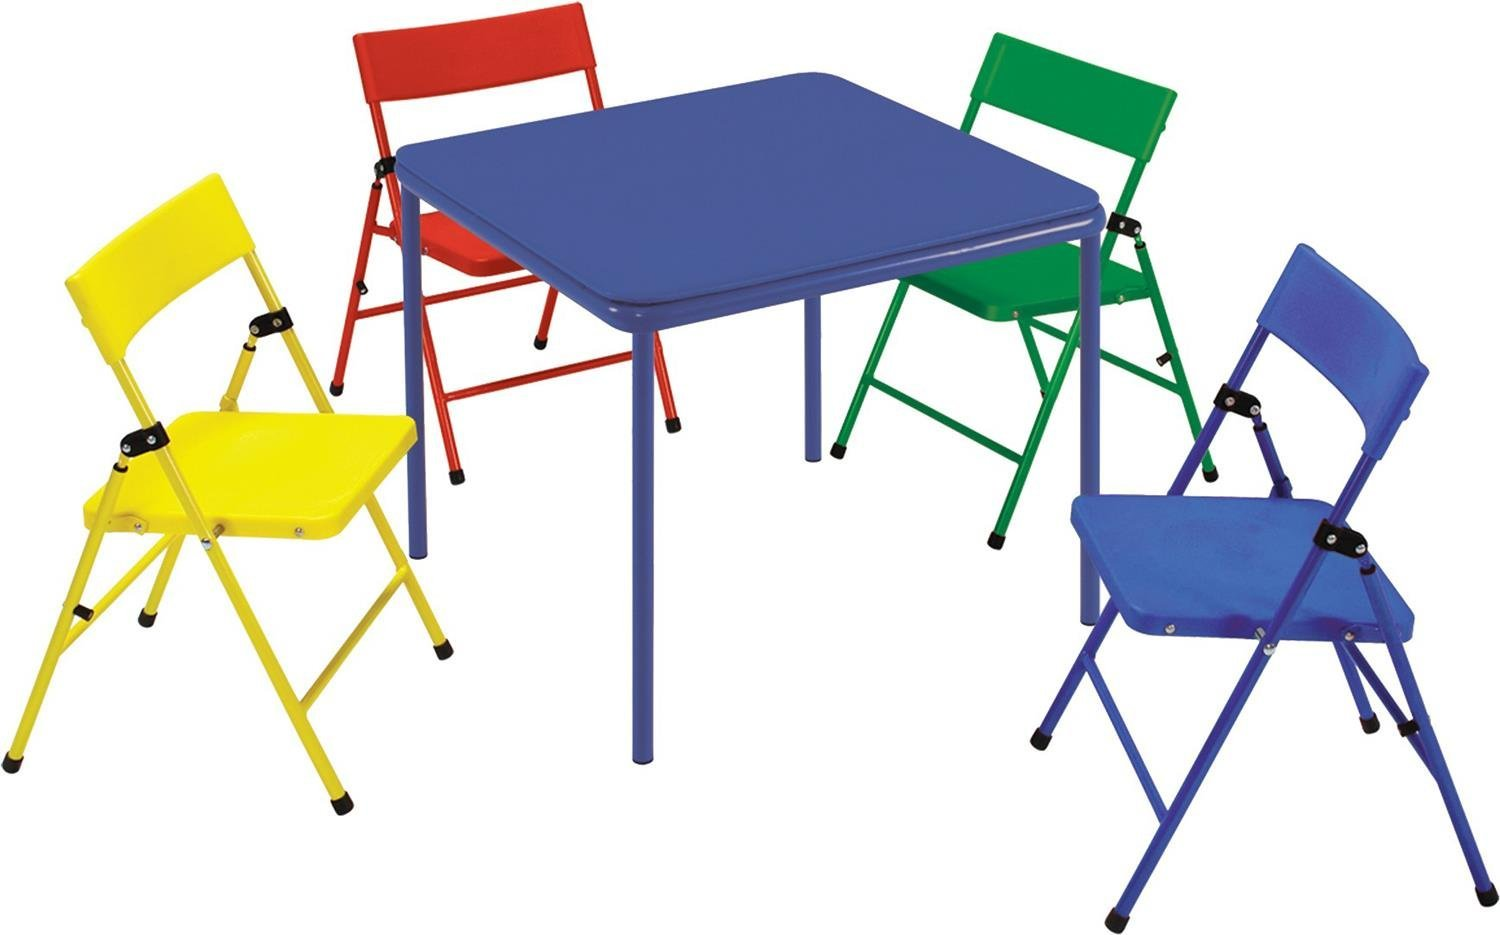 Childrens Table And Chair Set Minnesota Inflatables Rentals Largest Selection Of Giant